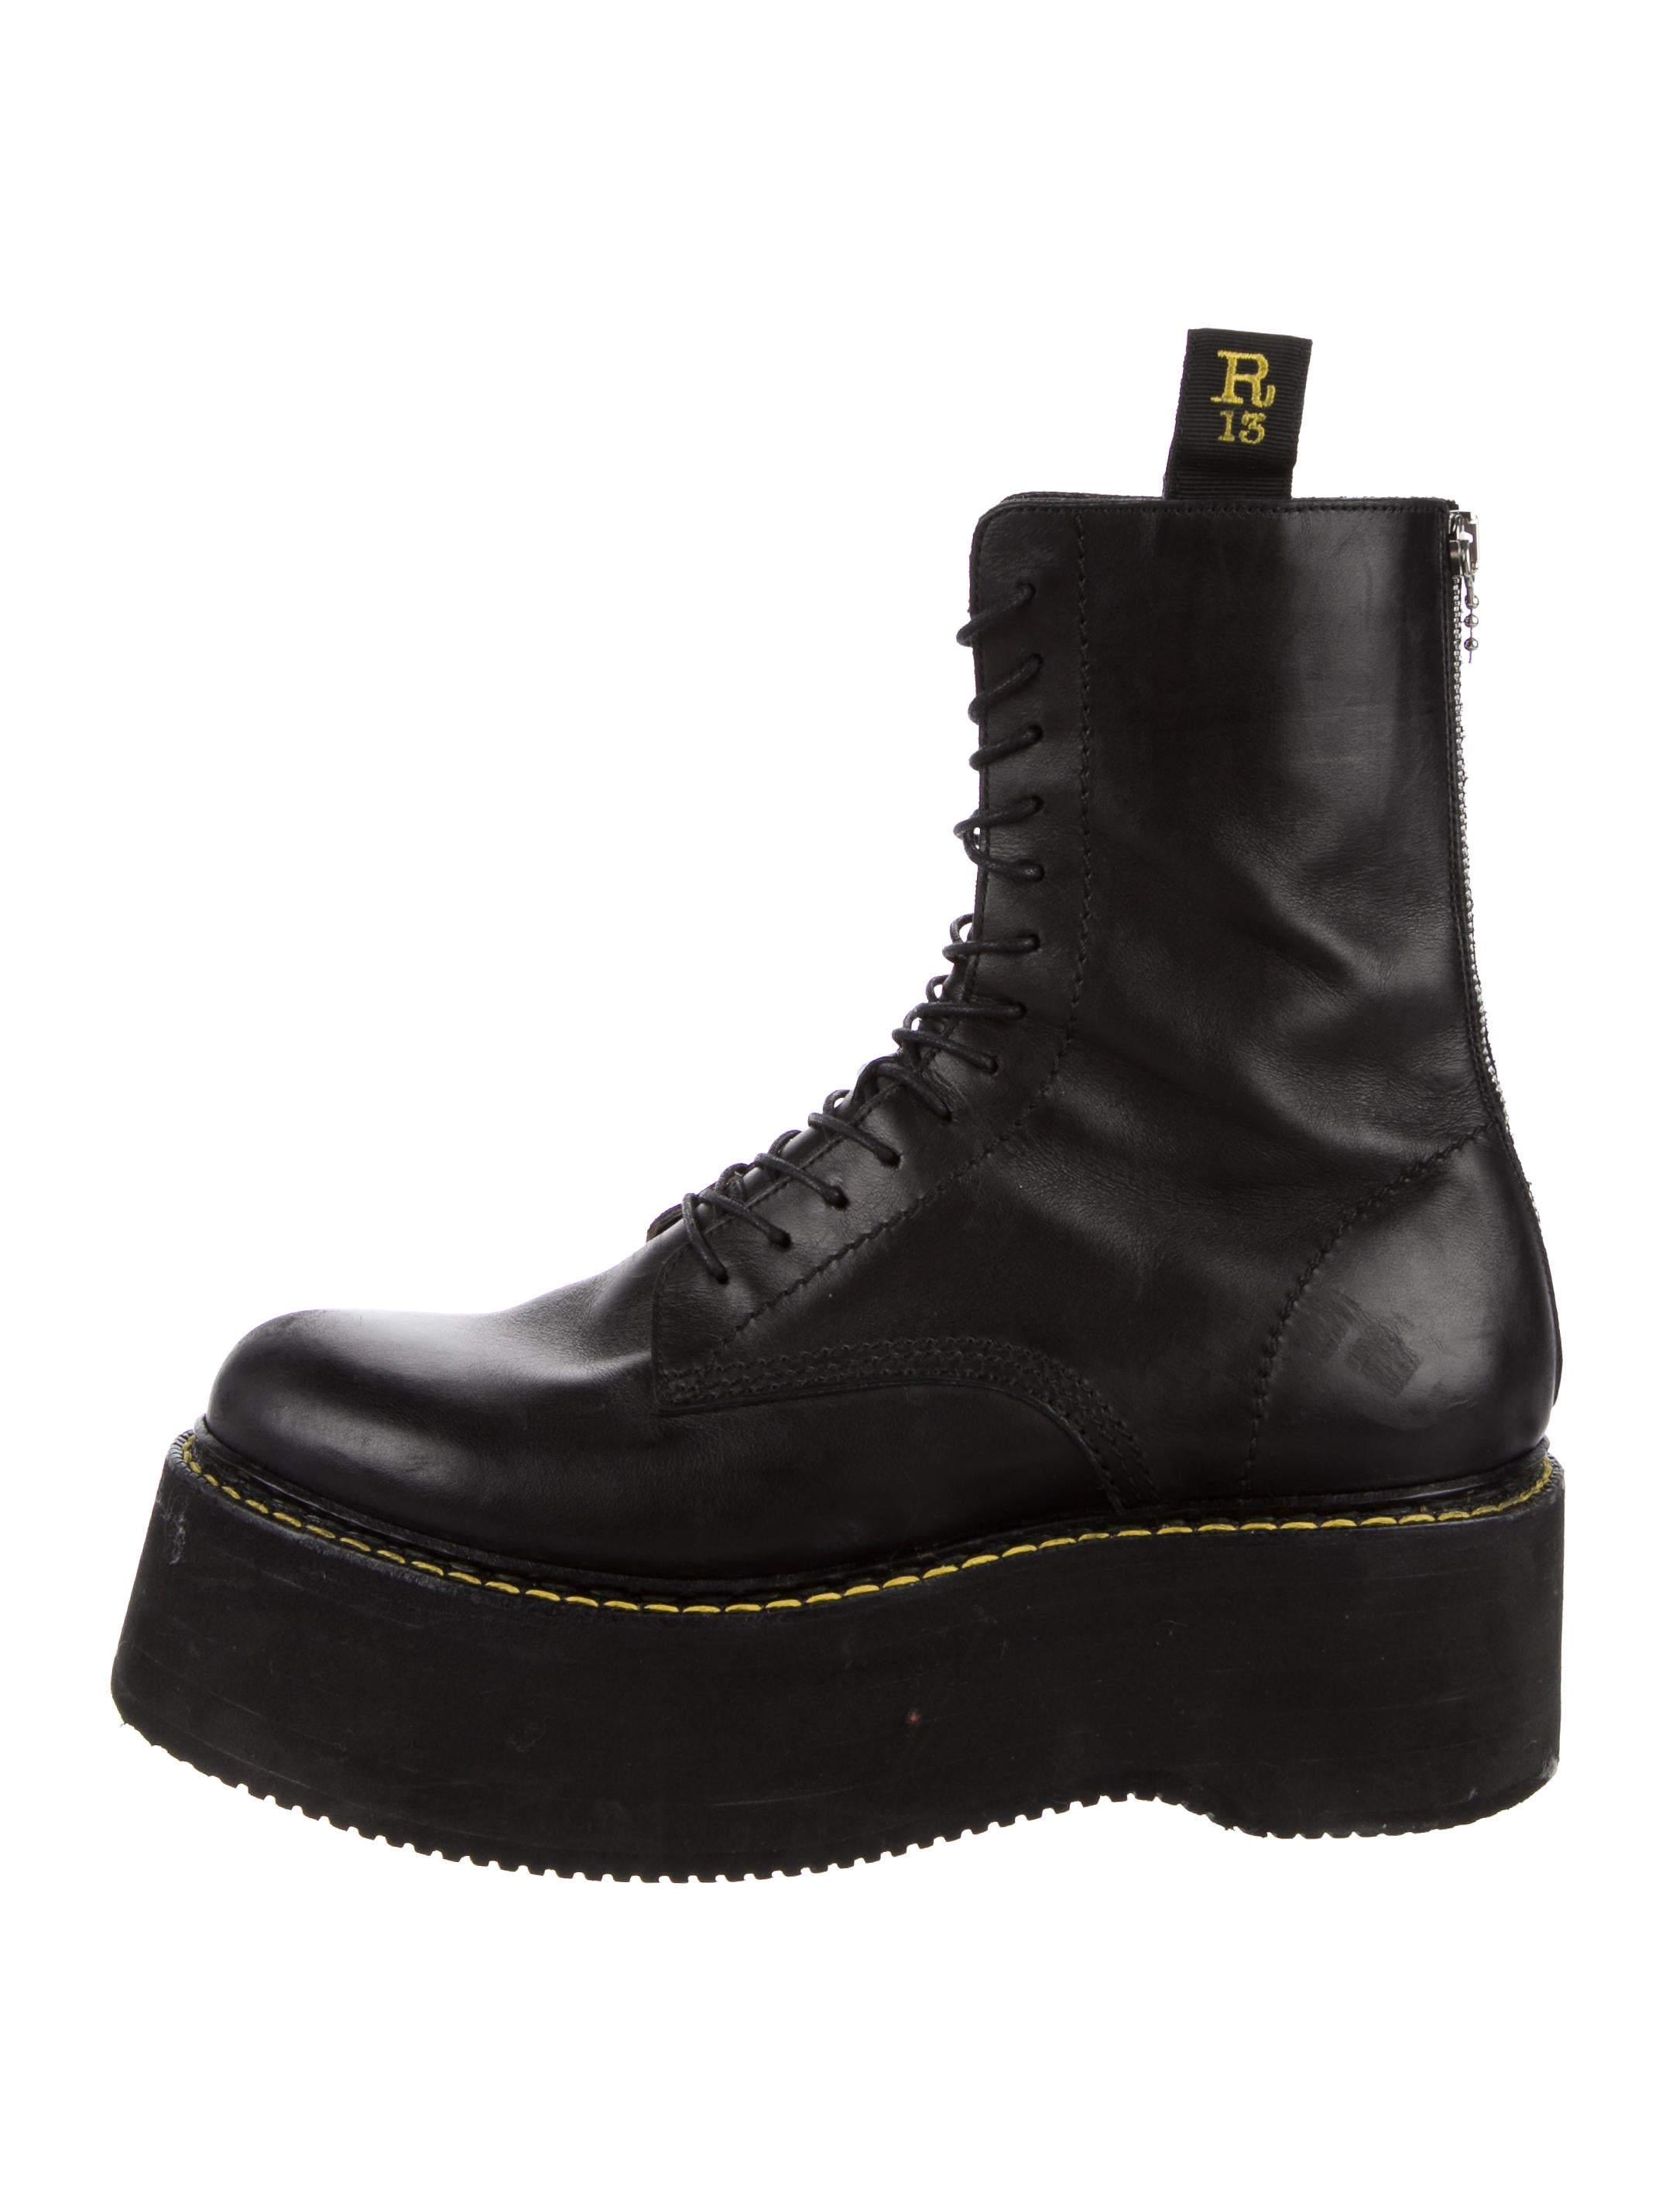 clearance view Valentino Black Stack Platform Lace-Up Boots outlet tumblr 5h7RIOdBx